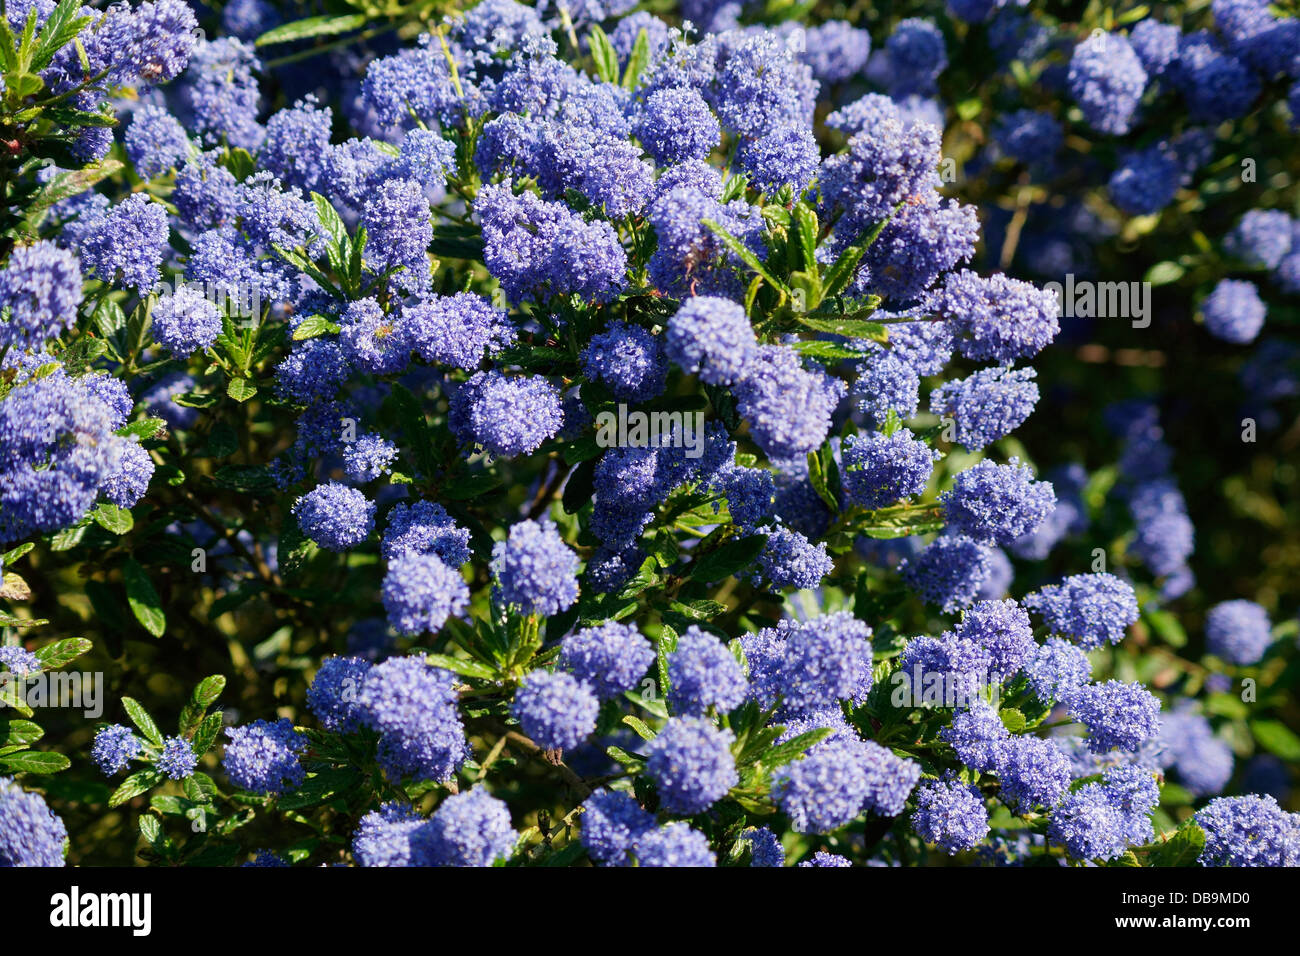 ceanothus blue mound californian lilac shrub flowering in. Black Bedroom Furniture Sets. Home Design Ideas